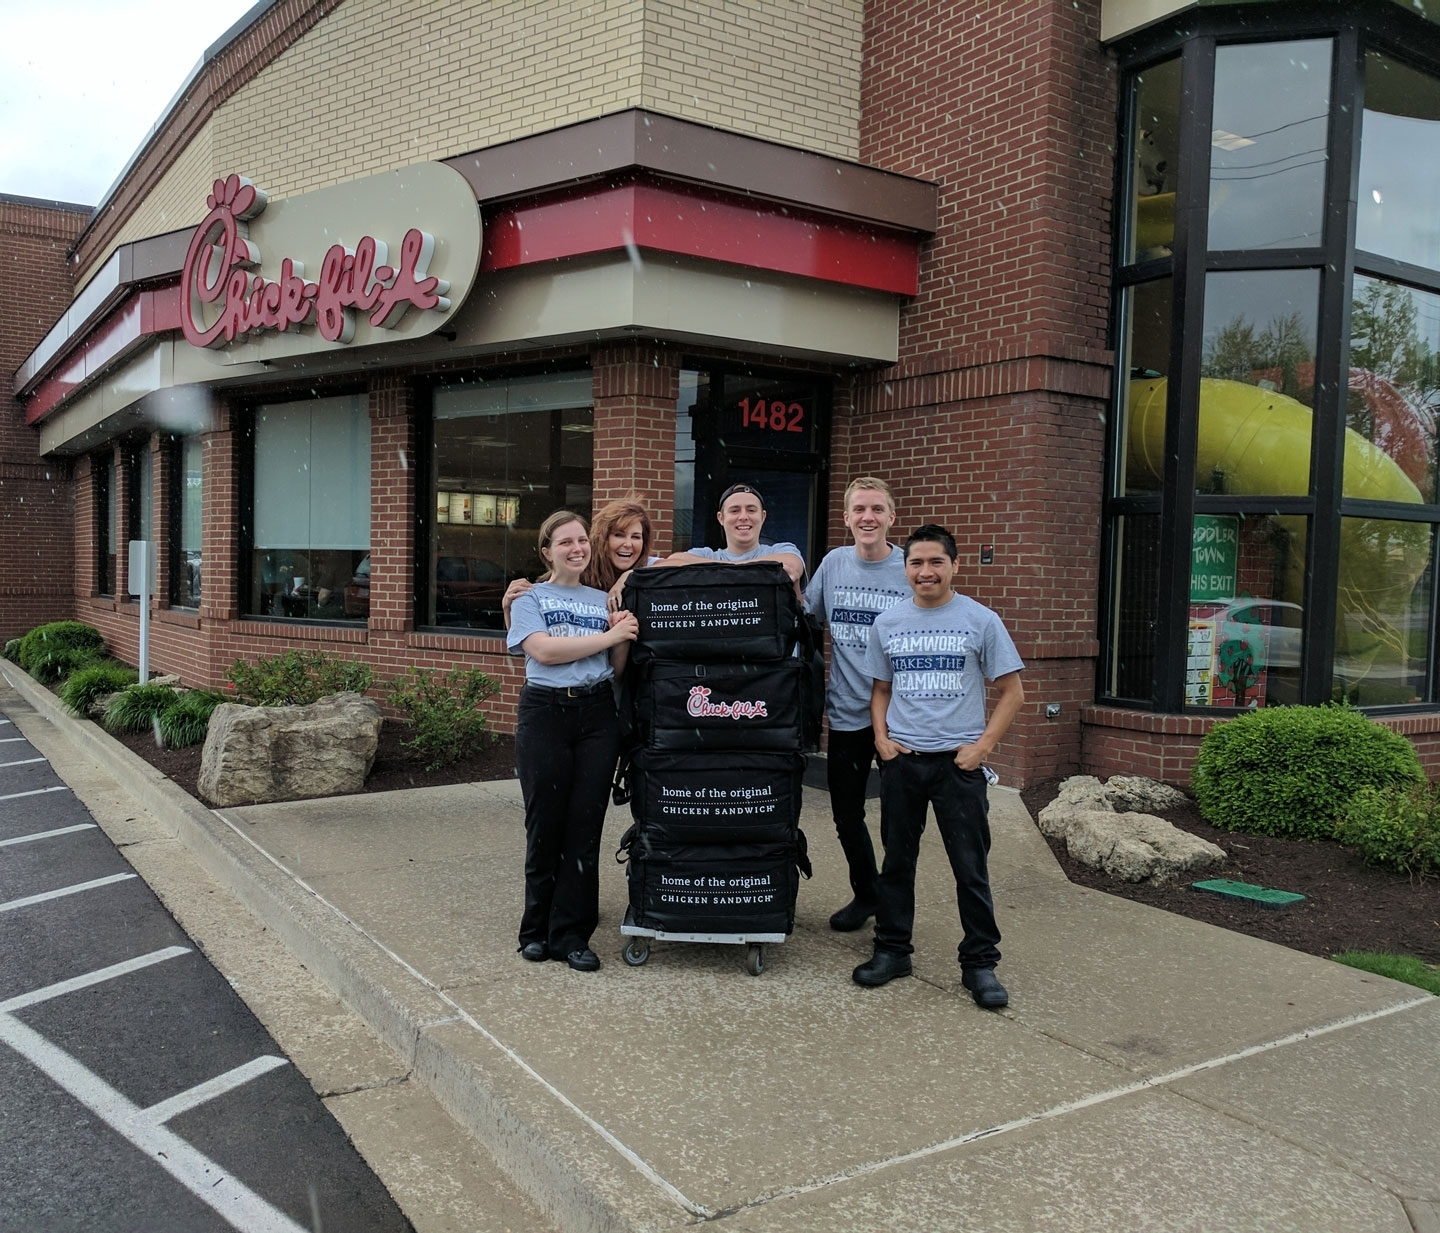 Restaurant Team Gives Back | Chick-Fil-A with regard to Does Chick Fil A Have A Wall Calendar